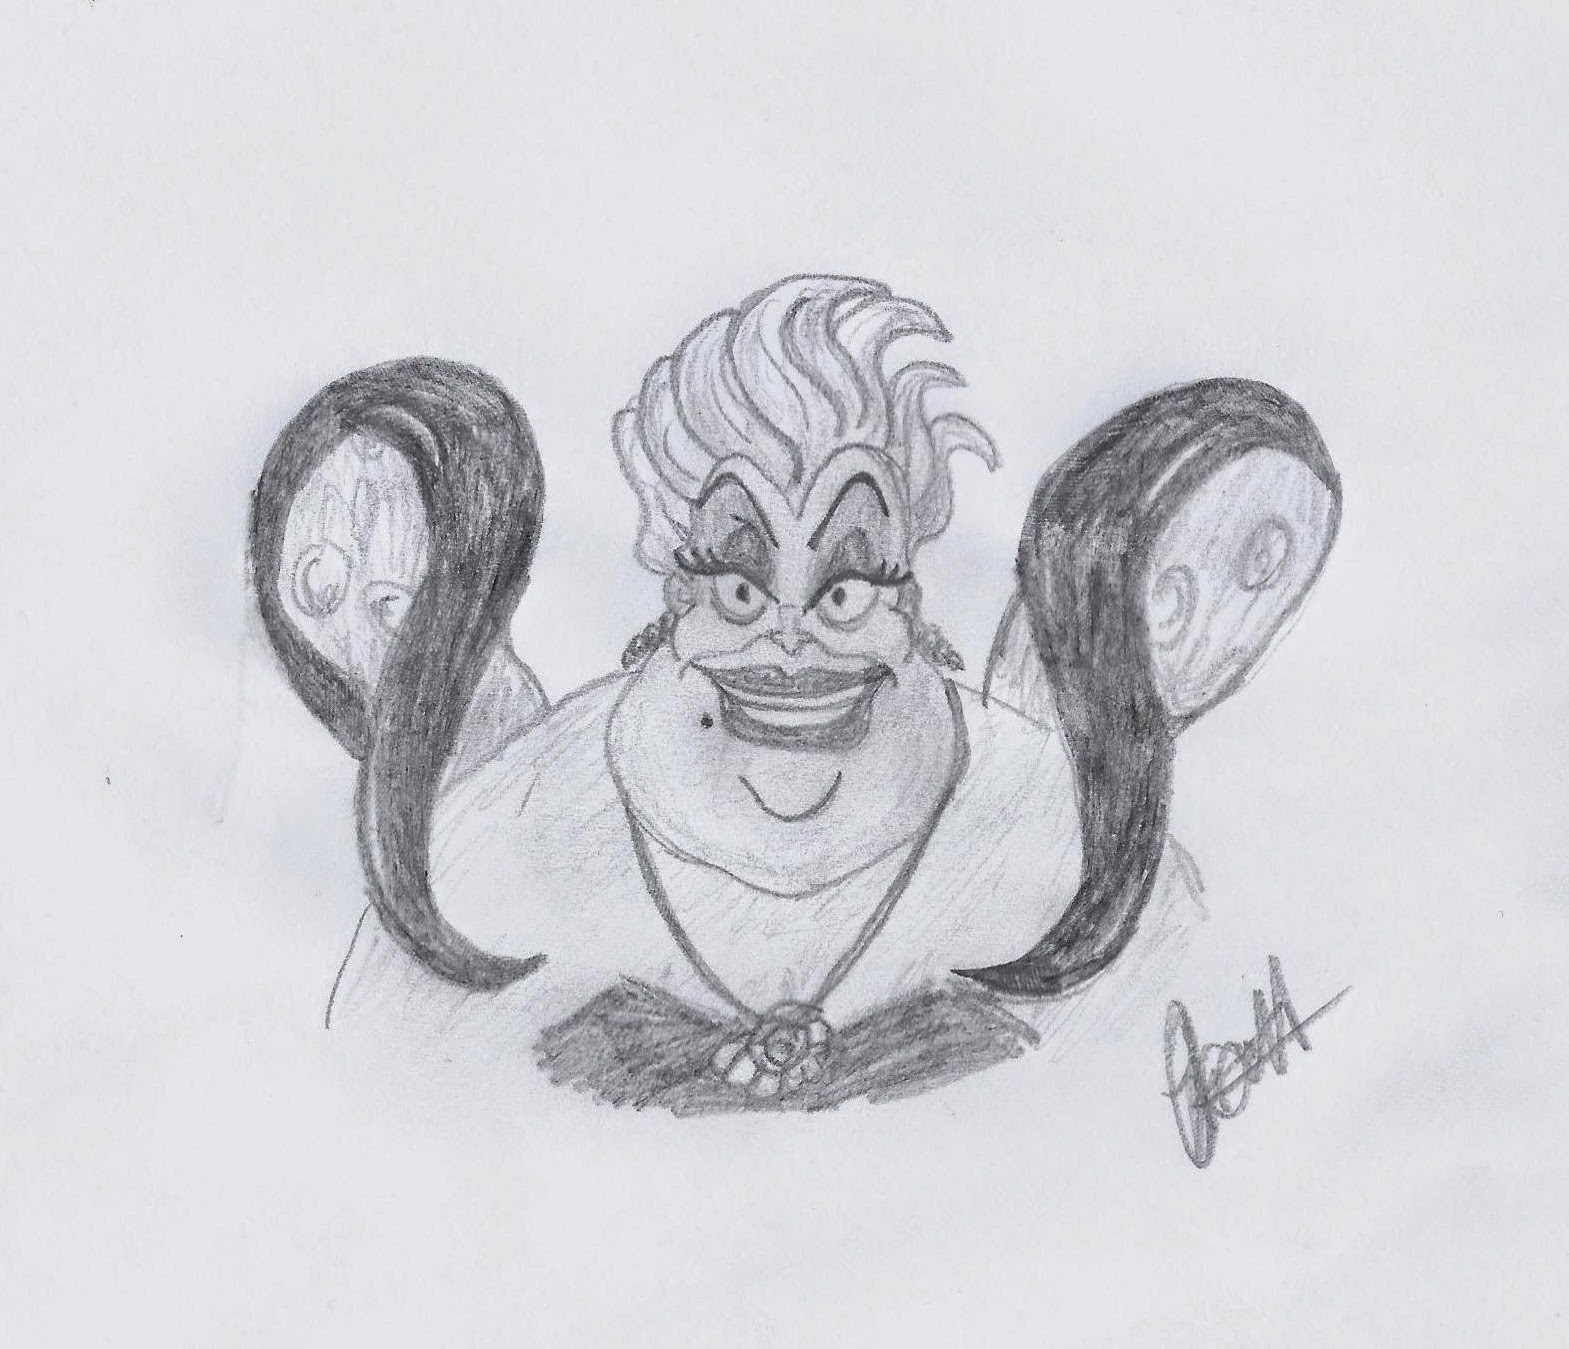 Disney Study: Ursula the Sea Witch from The Little Mermaid, www.JoLinsdell.com #Disney #Sketches